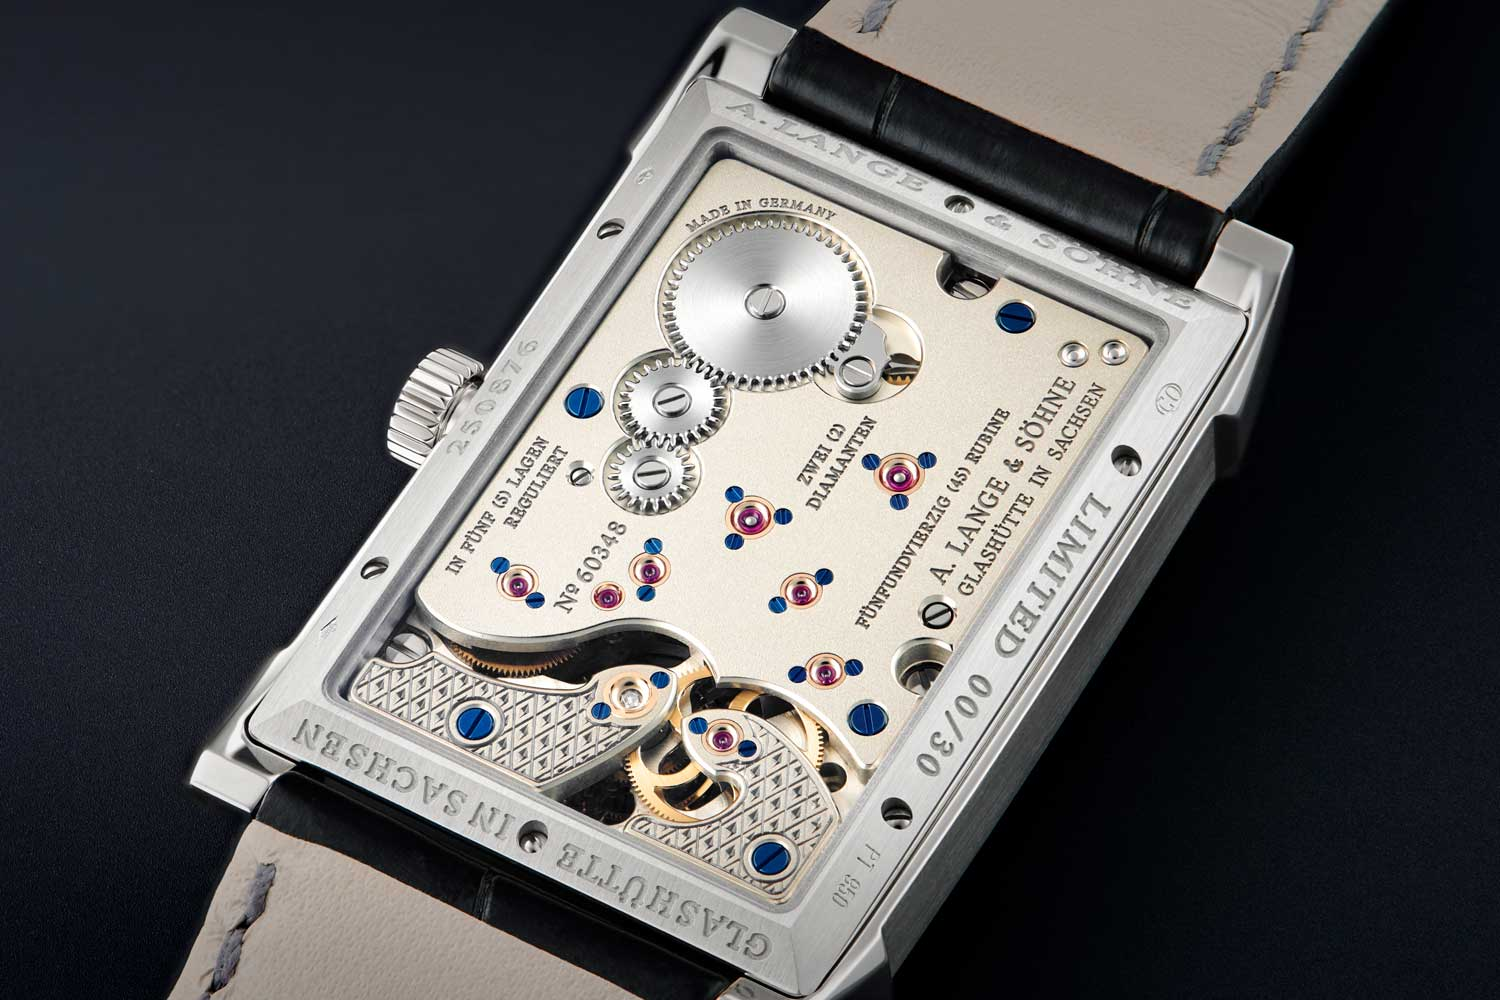 The Lange manufacture calibre L042.1, manually wound, decorated and assembled twice by hand; three-quarter plate made of untreated German silver; tourbillon and intermediate wheel cocks engraved by hand (©Revolution)